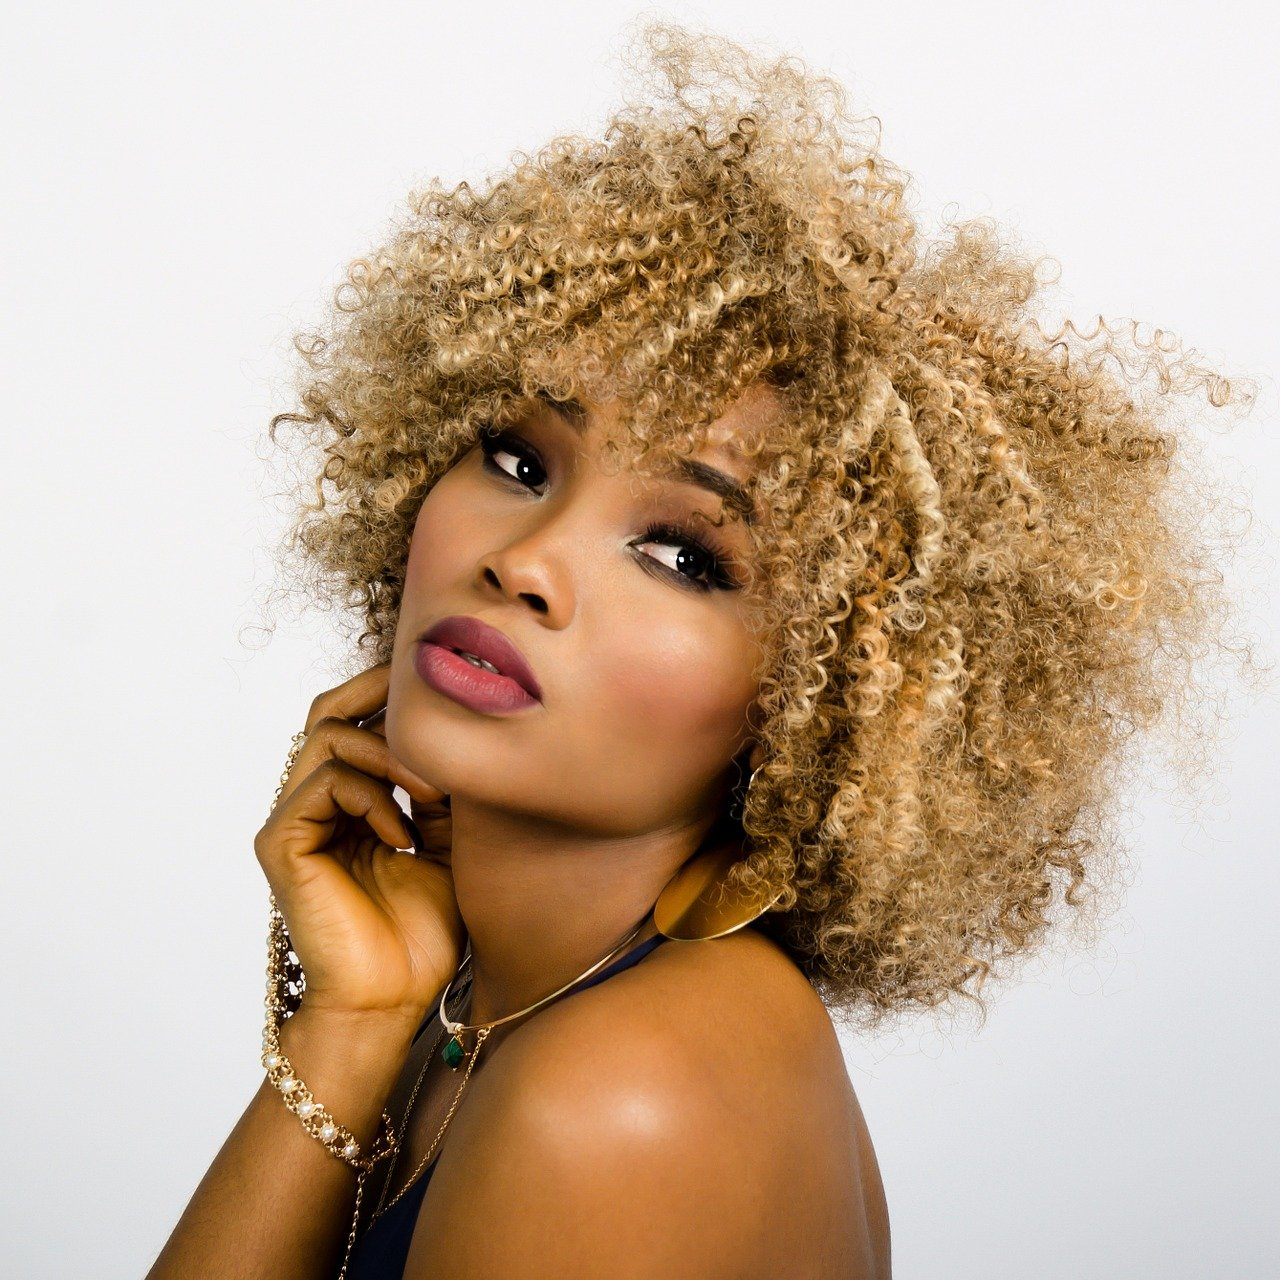 woman, beauty, curly